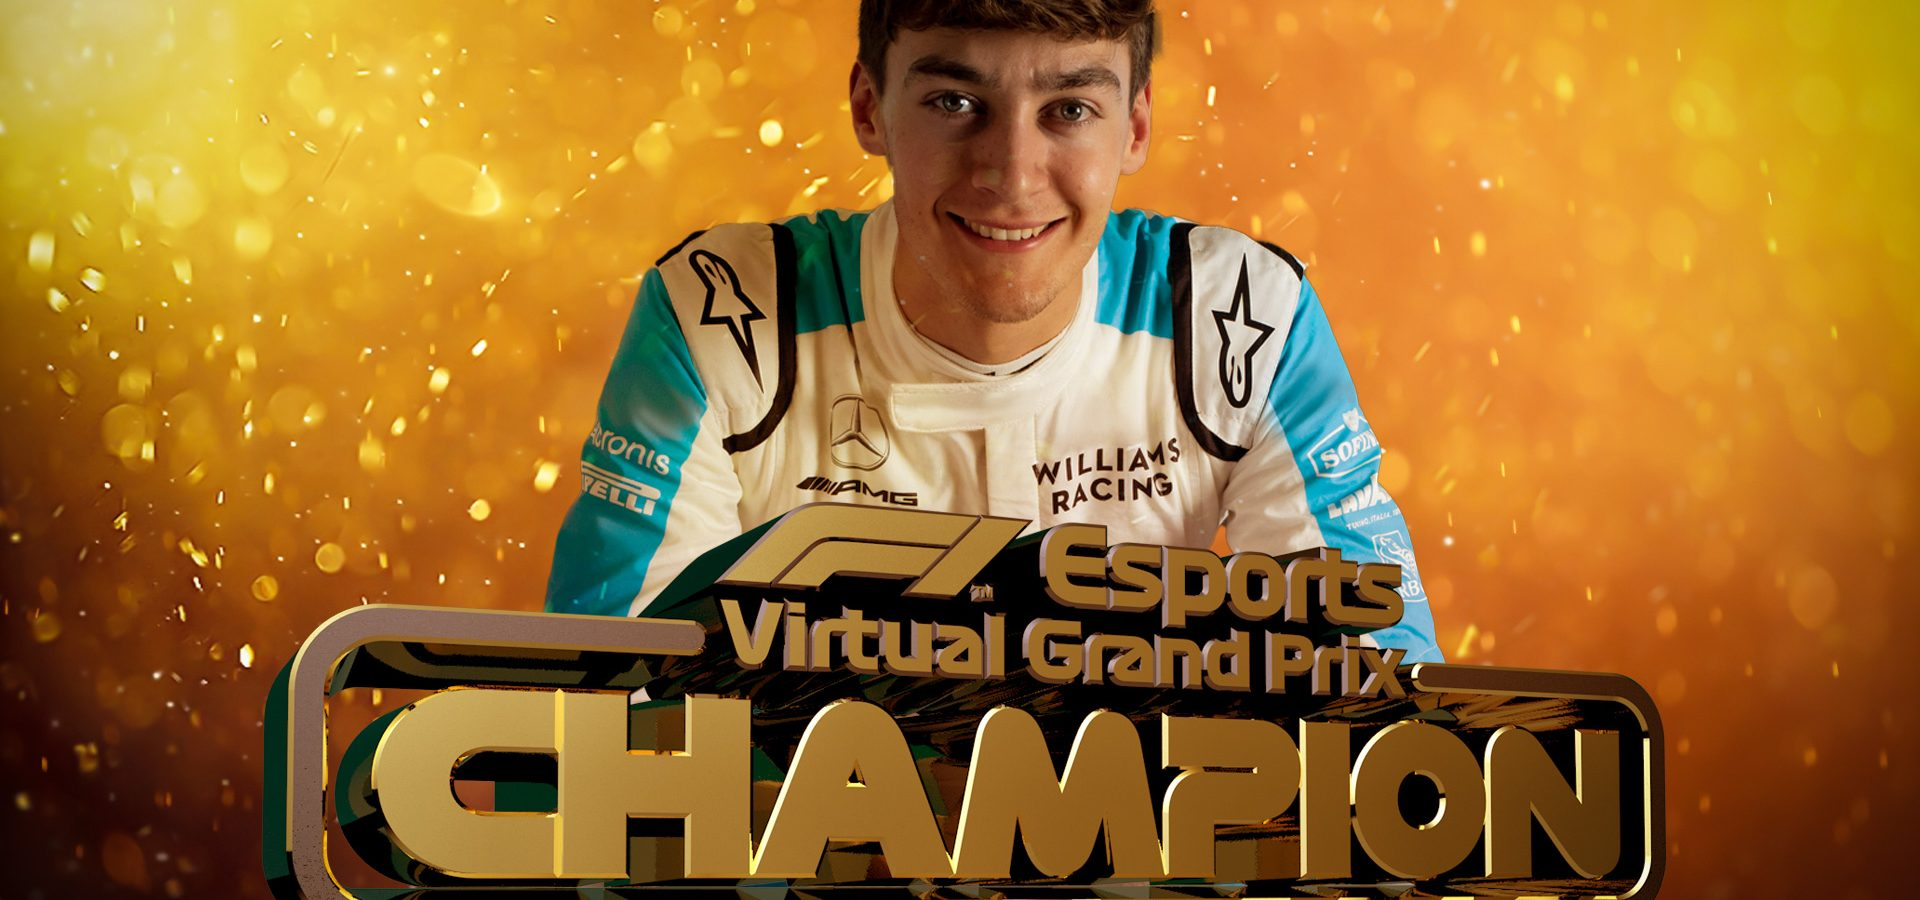 George Russell Williams Virtual Champion